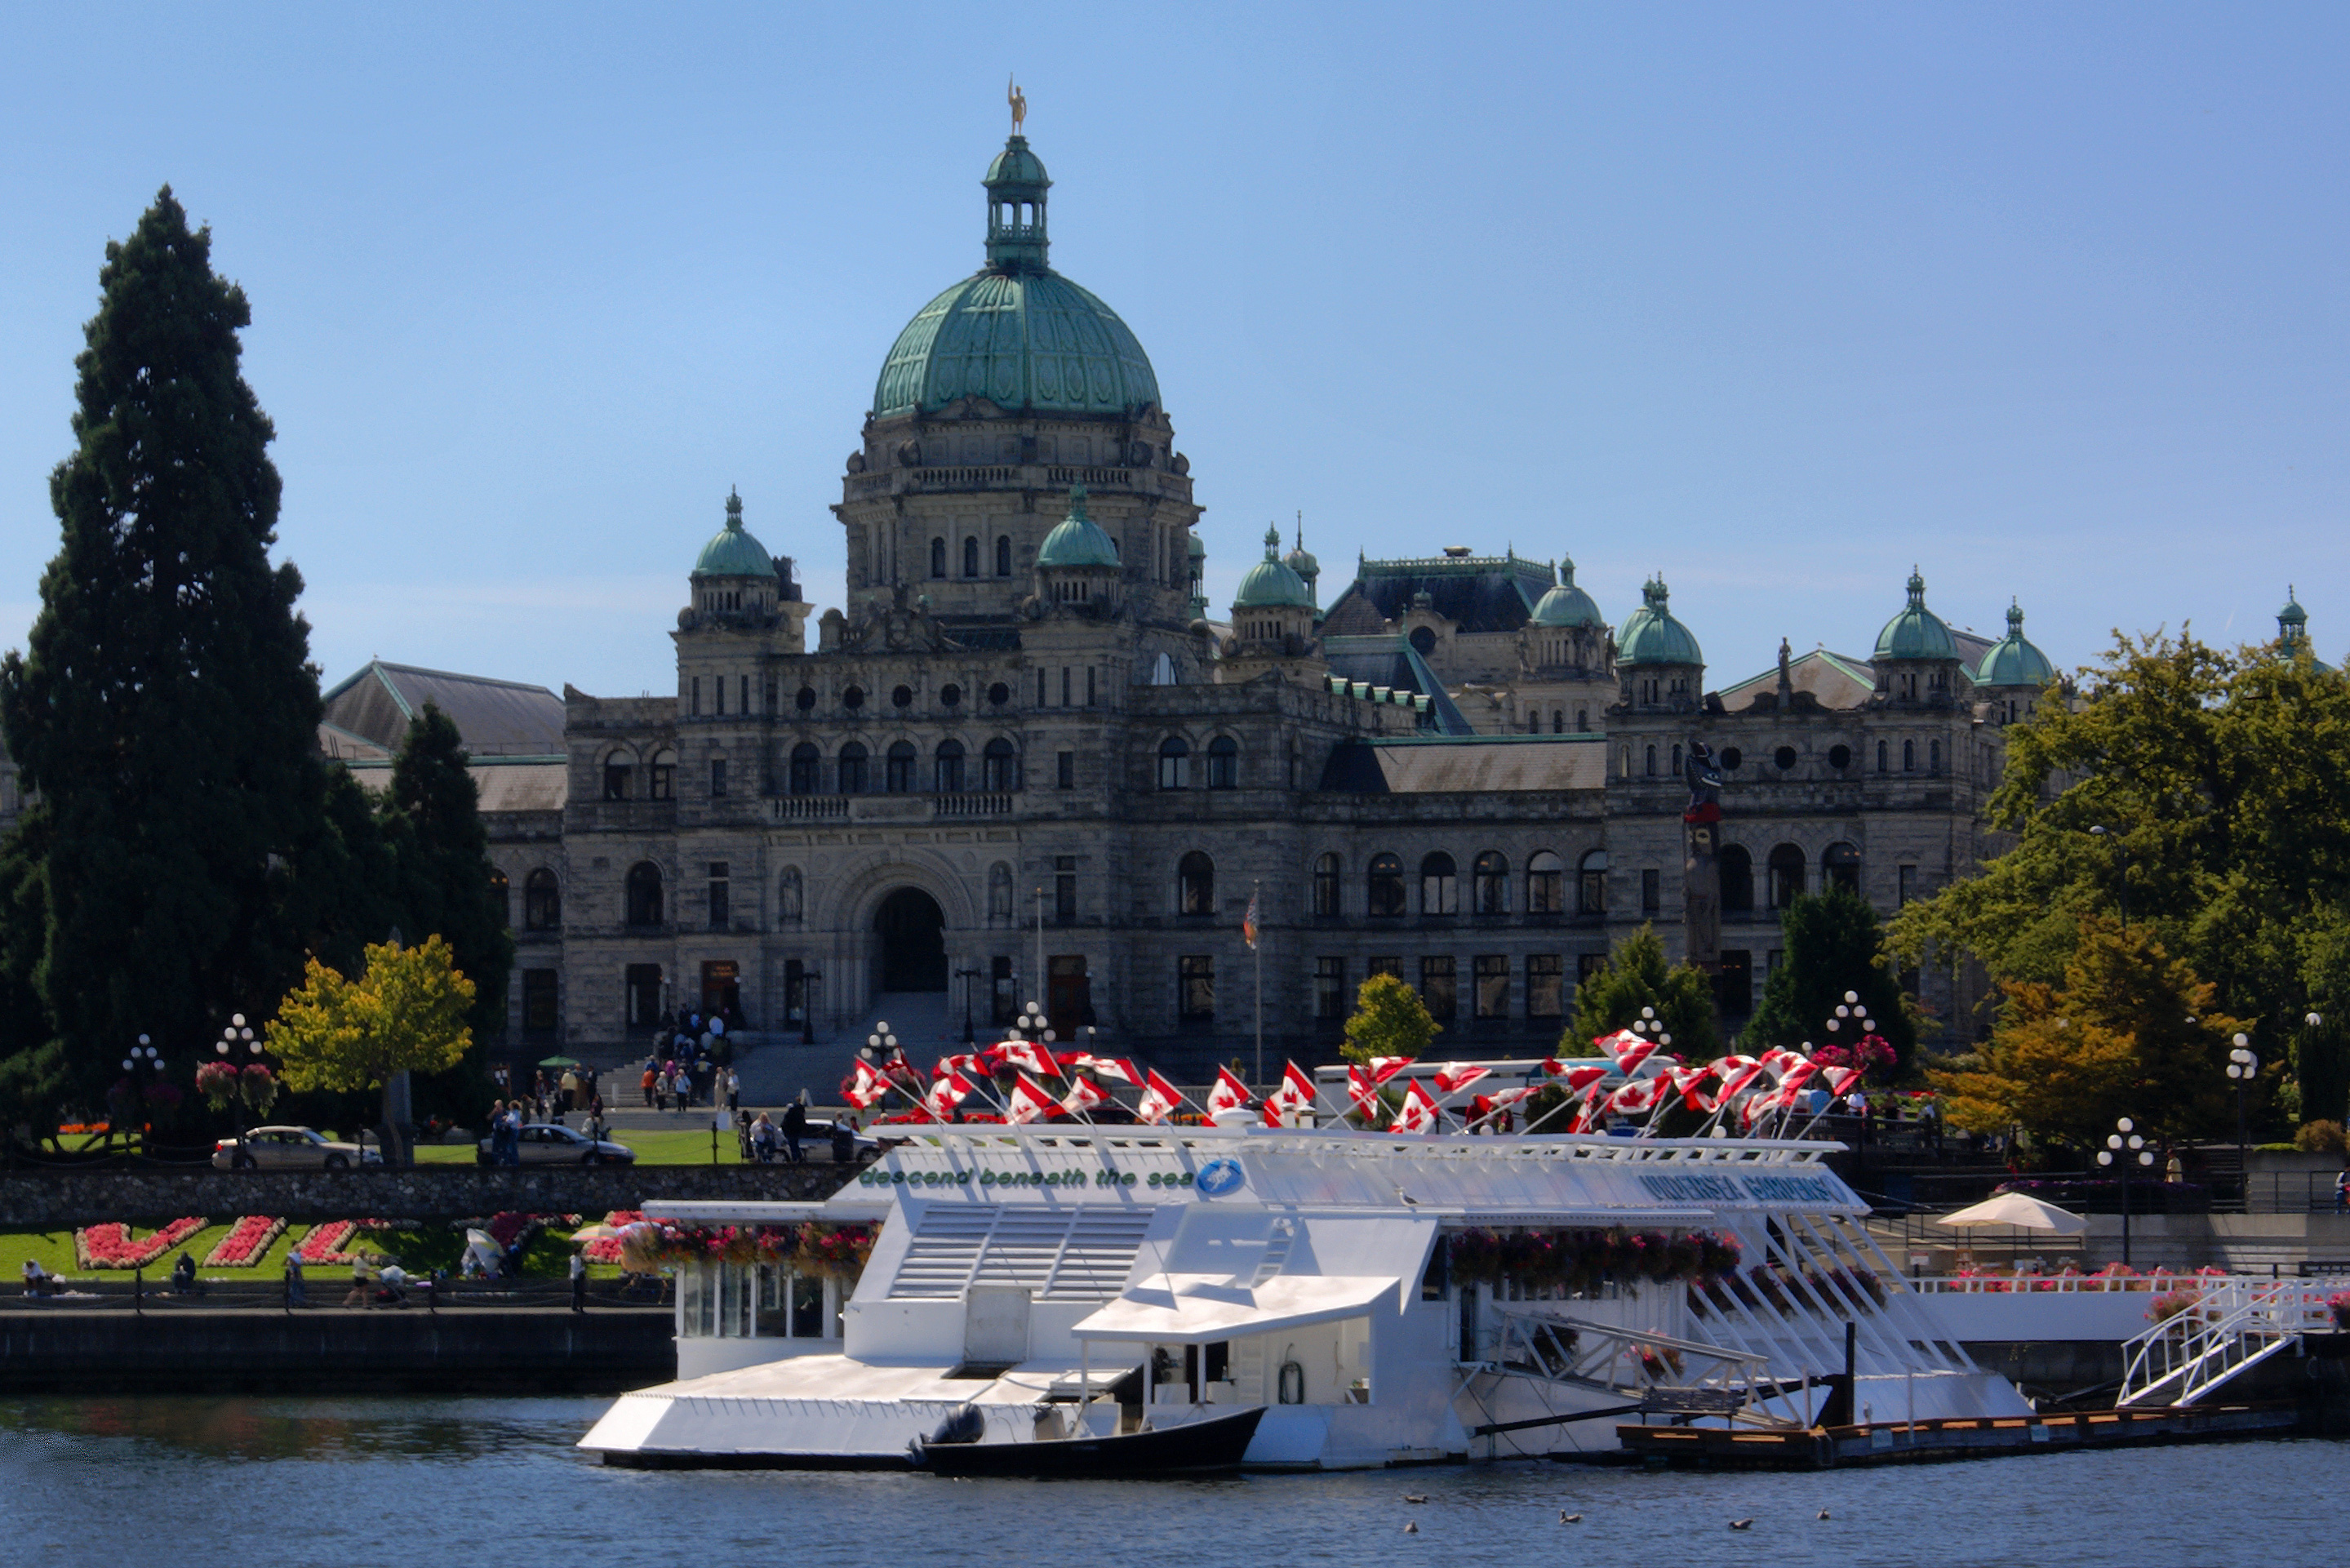 The Legislative Buildings, Victoria, BC. (Pacific Undersea Gardens also pictured.), Credit: Wikimedia Commons